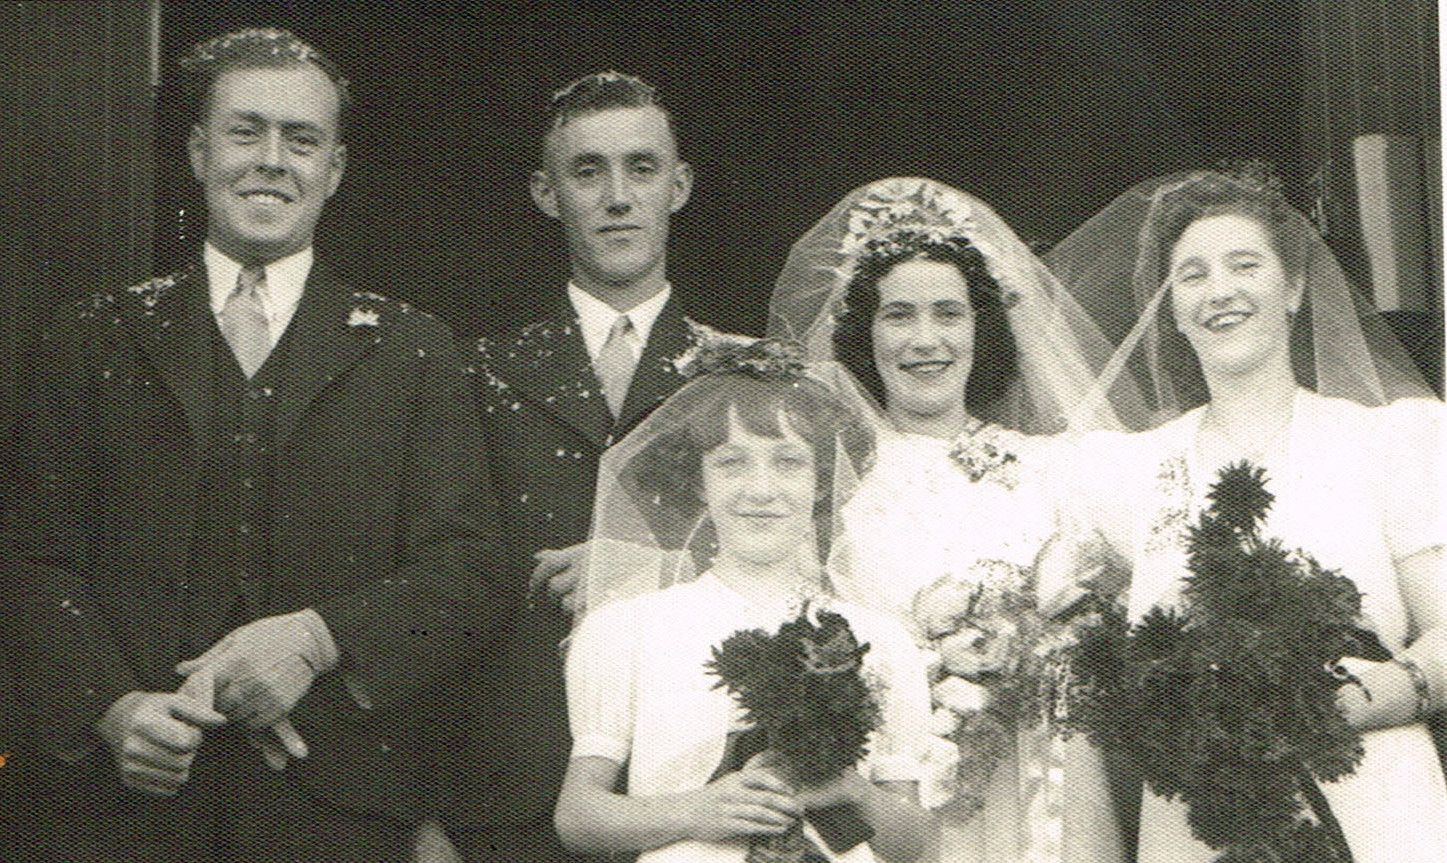 Bobby and Kath Wilsons wedding, Jacky Wilson best man on left